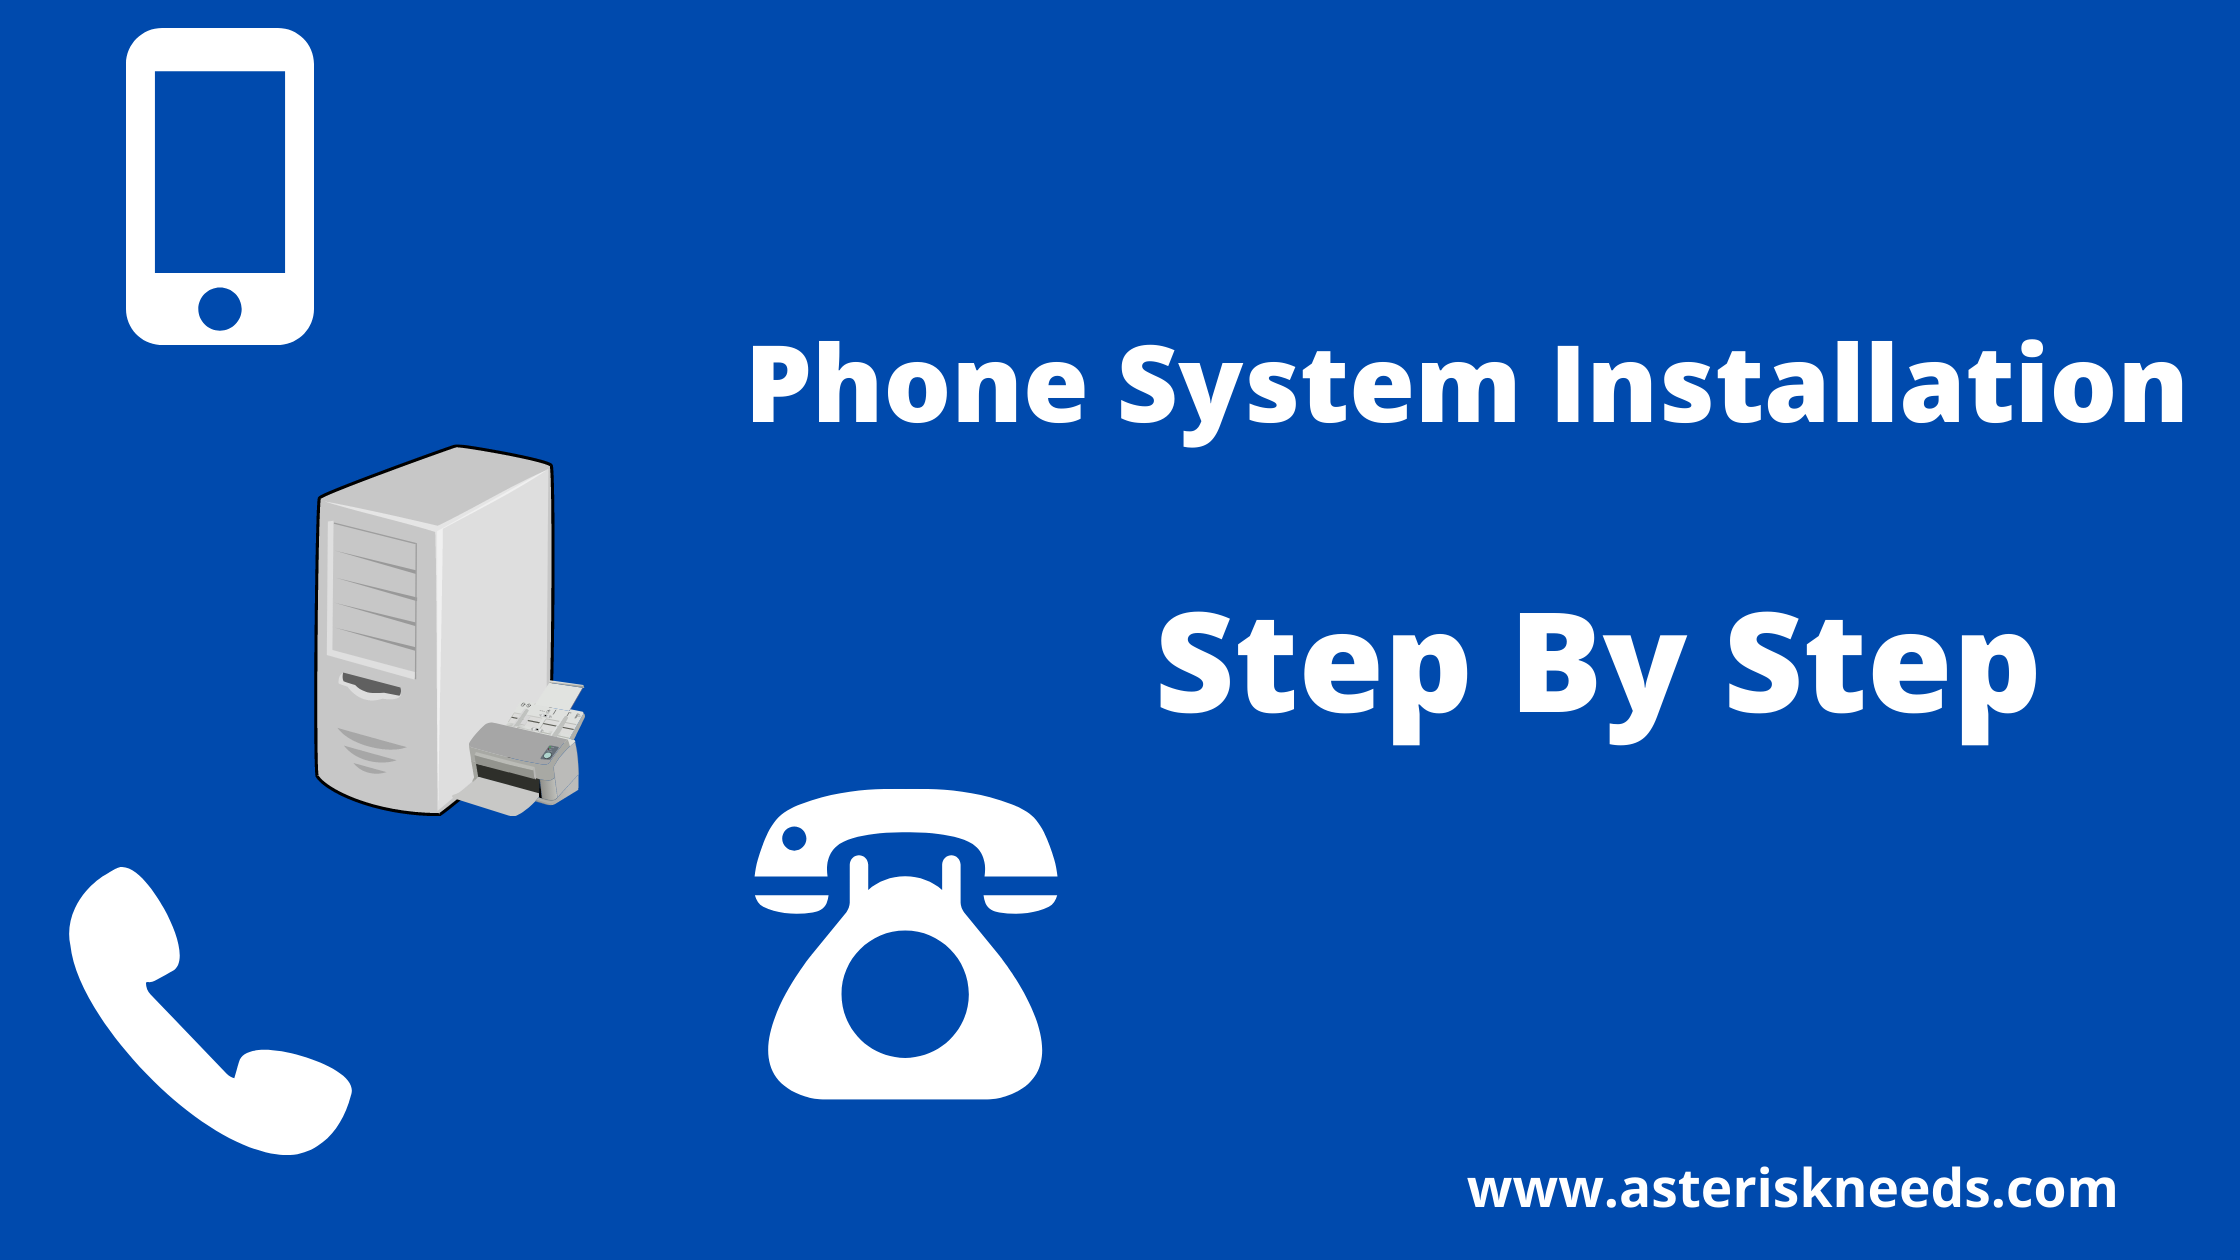 Building your own phone step by step installation